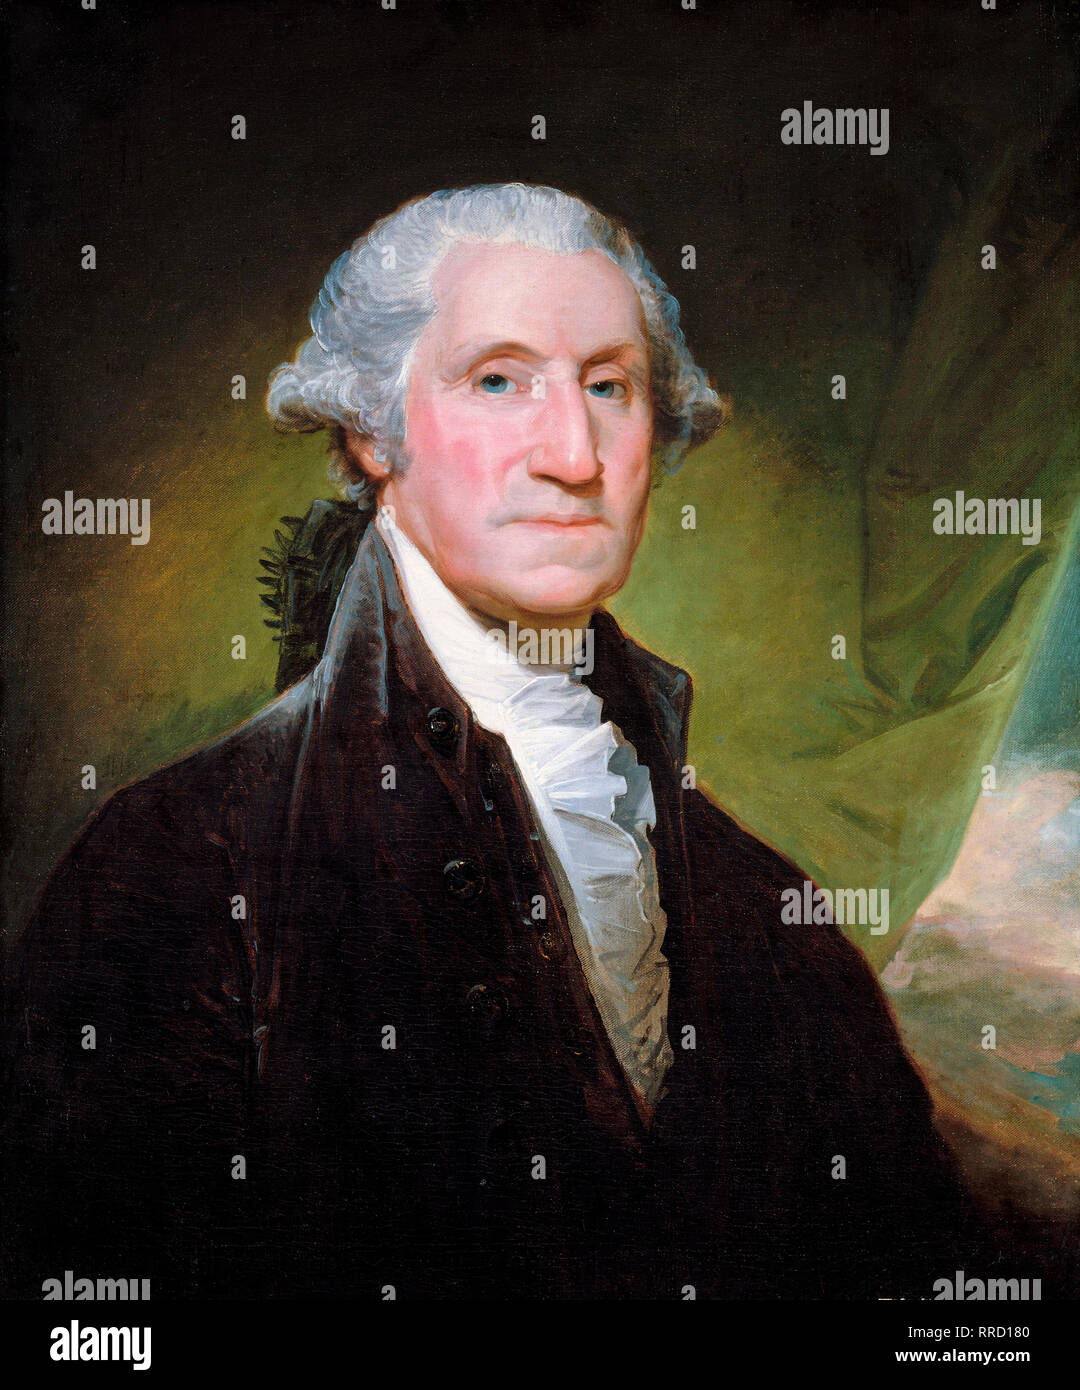 George Washington portrait by Gilbert Stuart, c. 1795, painting Stock Photo